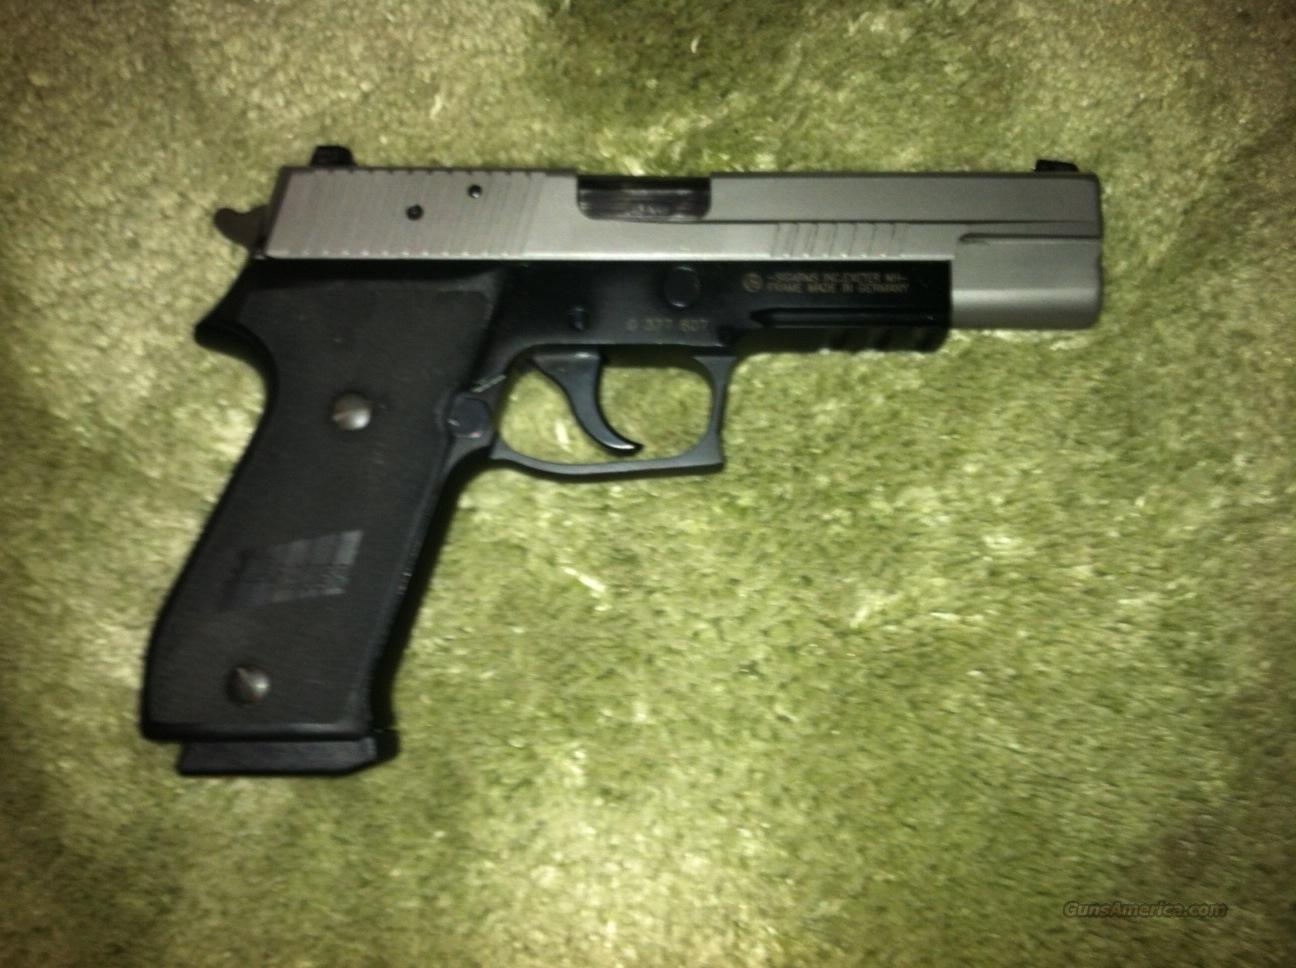 P220 match 5 inch barrel fixed night sights  Guns > Pistols > Sig - Sauer/Sigarms Pistols > P220